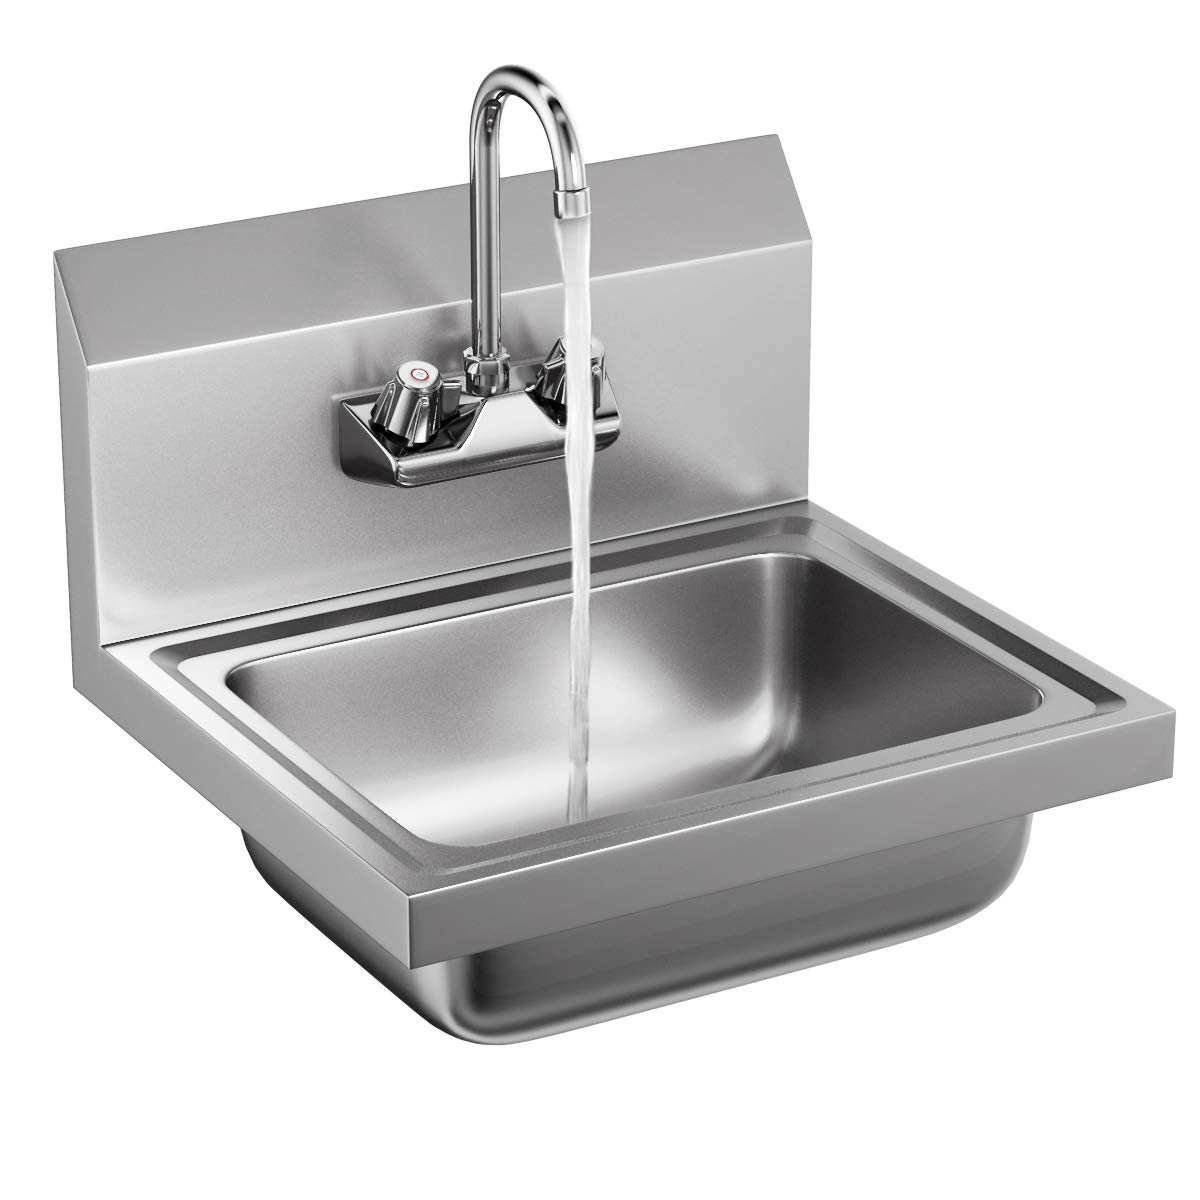 Giantex Stainless Steel Hand Wash Sink NSF Certificated Wall Mount Commercial Kitchen Heavy Duty with Faucet by Giantex